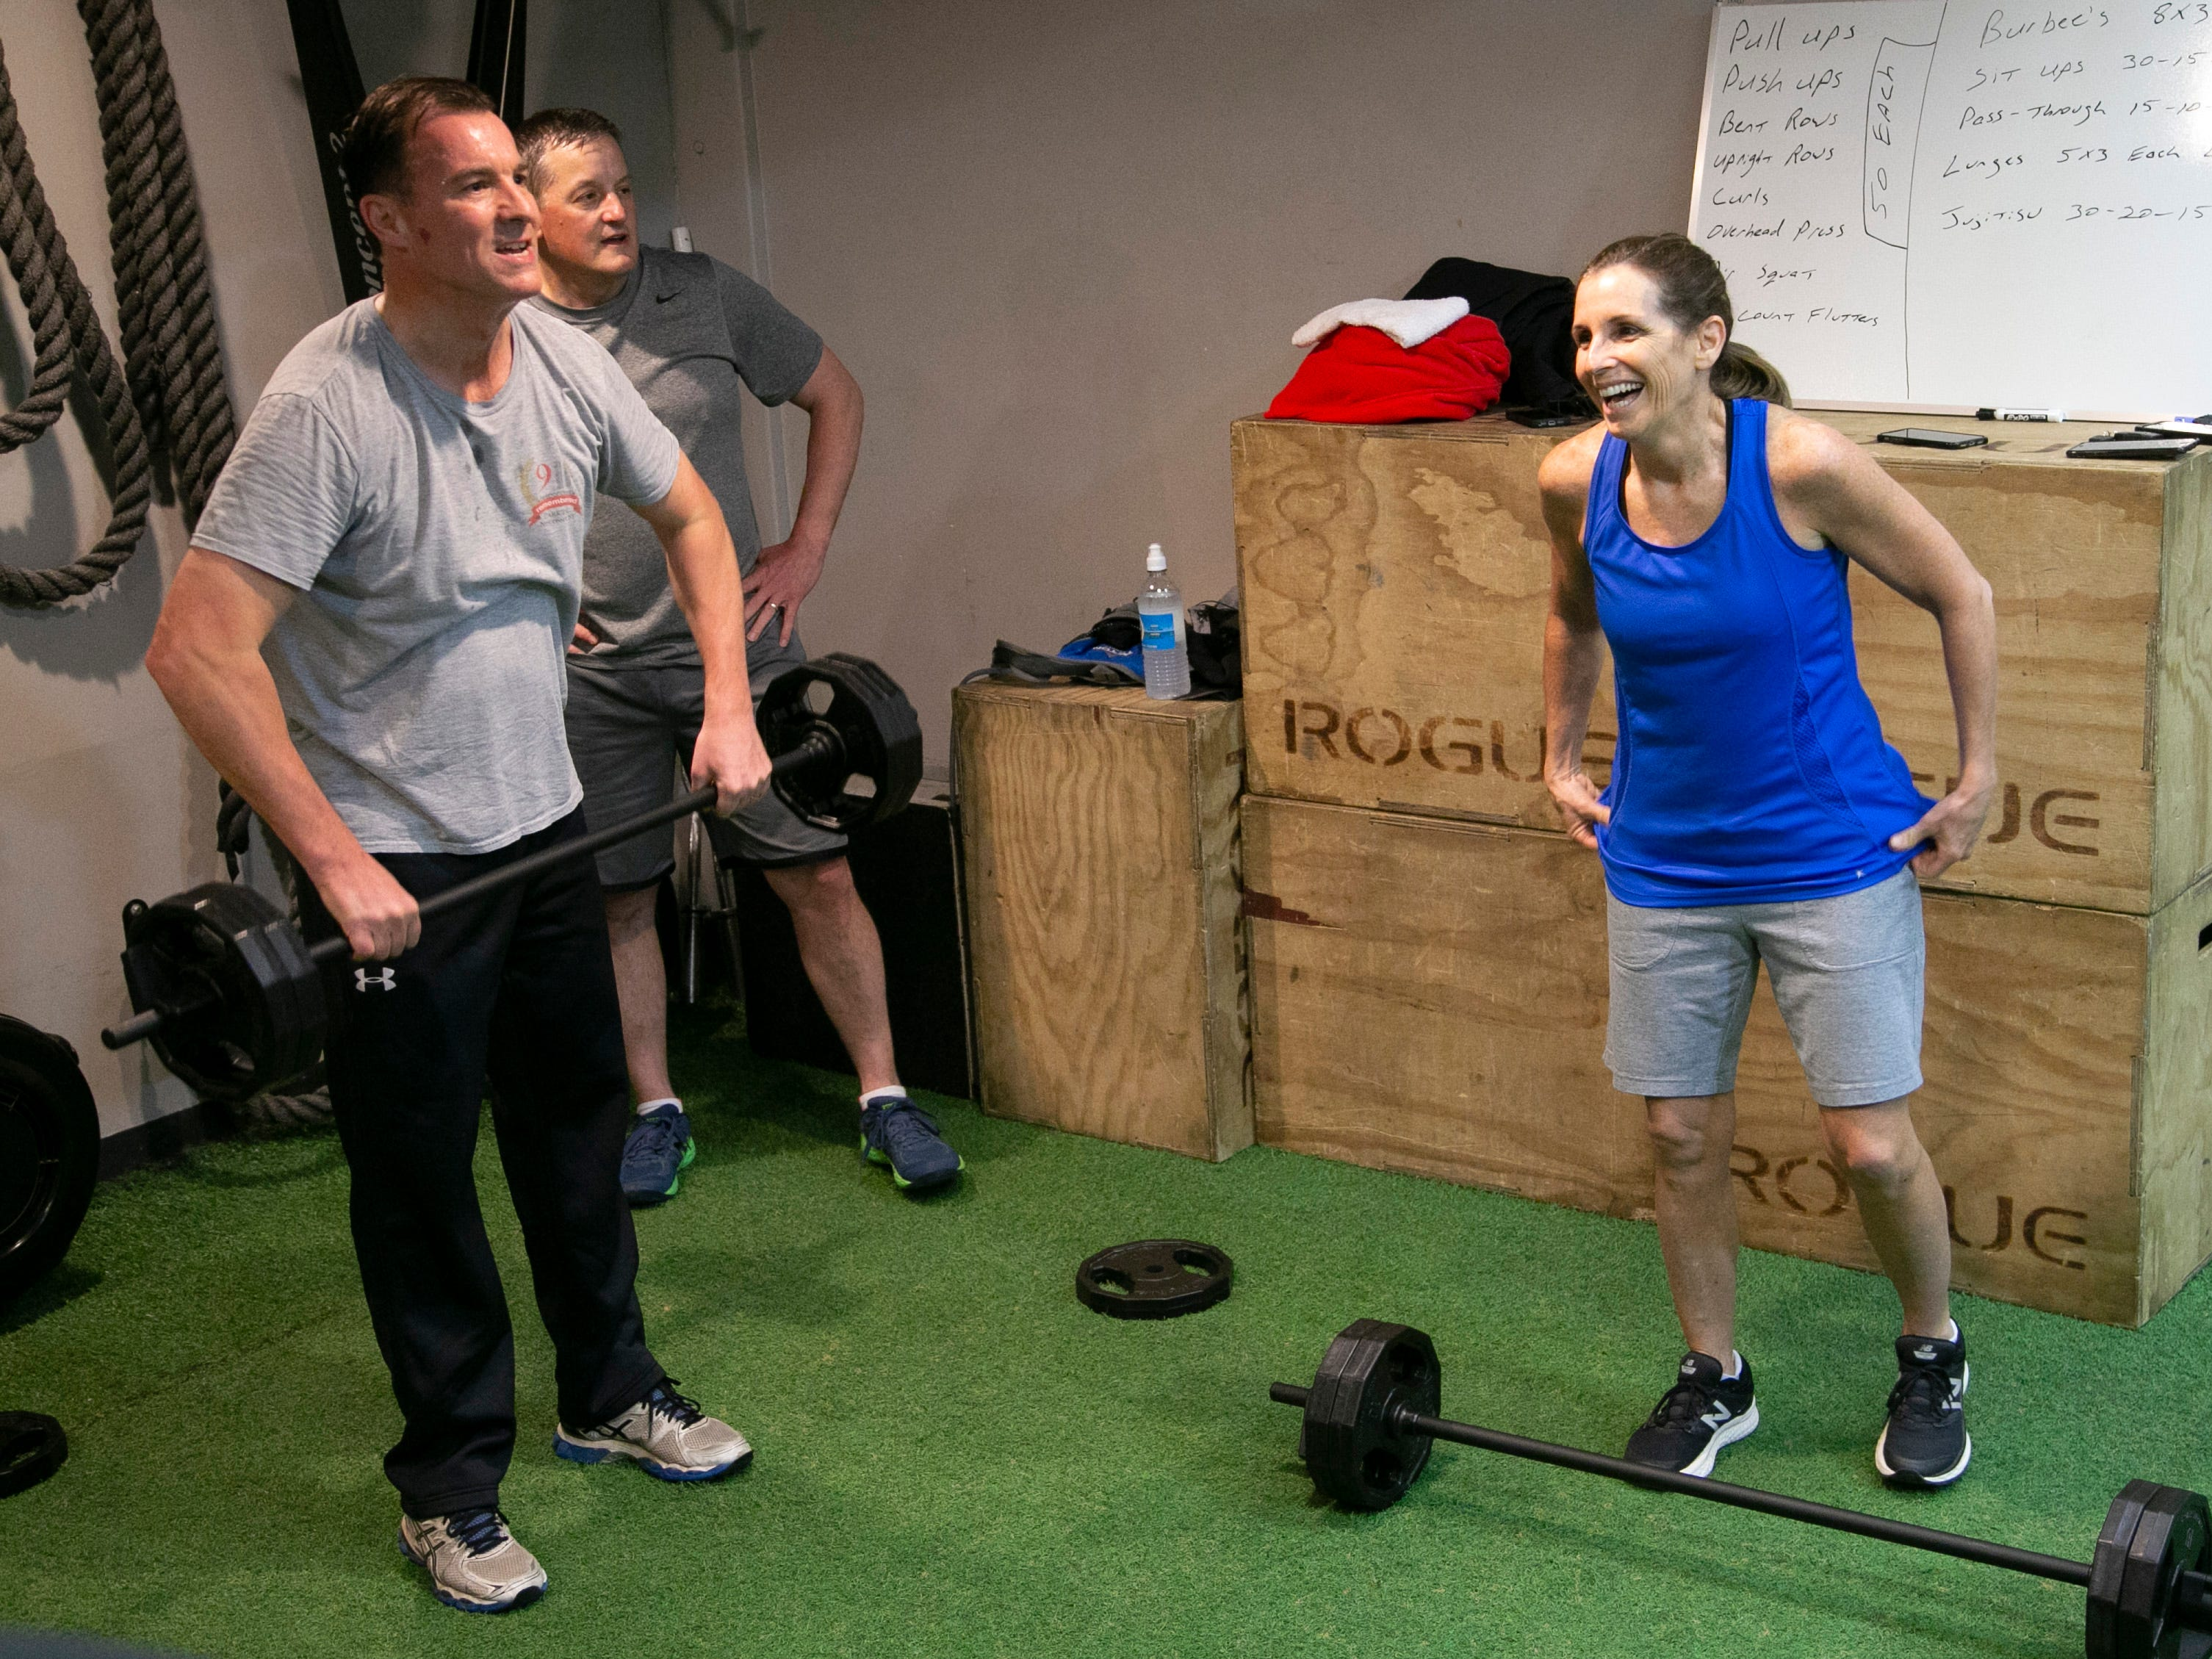 U.S. Senator Martha McSally, R.-Ariz., lifts (right) weights while exercising with other legislatures including U.S. Representatives Tom Suozzi, D-N.Y., (left) and Bruce Westerman, R-Ark., during a bipartisan workout group at 6 a.m. at a gym just outside the U.S. Capitol complex in Washington D.C. on Feb. 7, 2019.